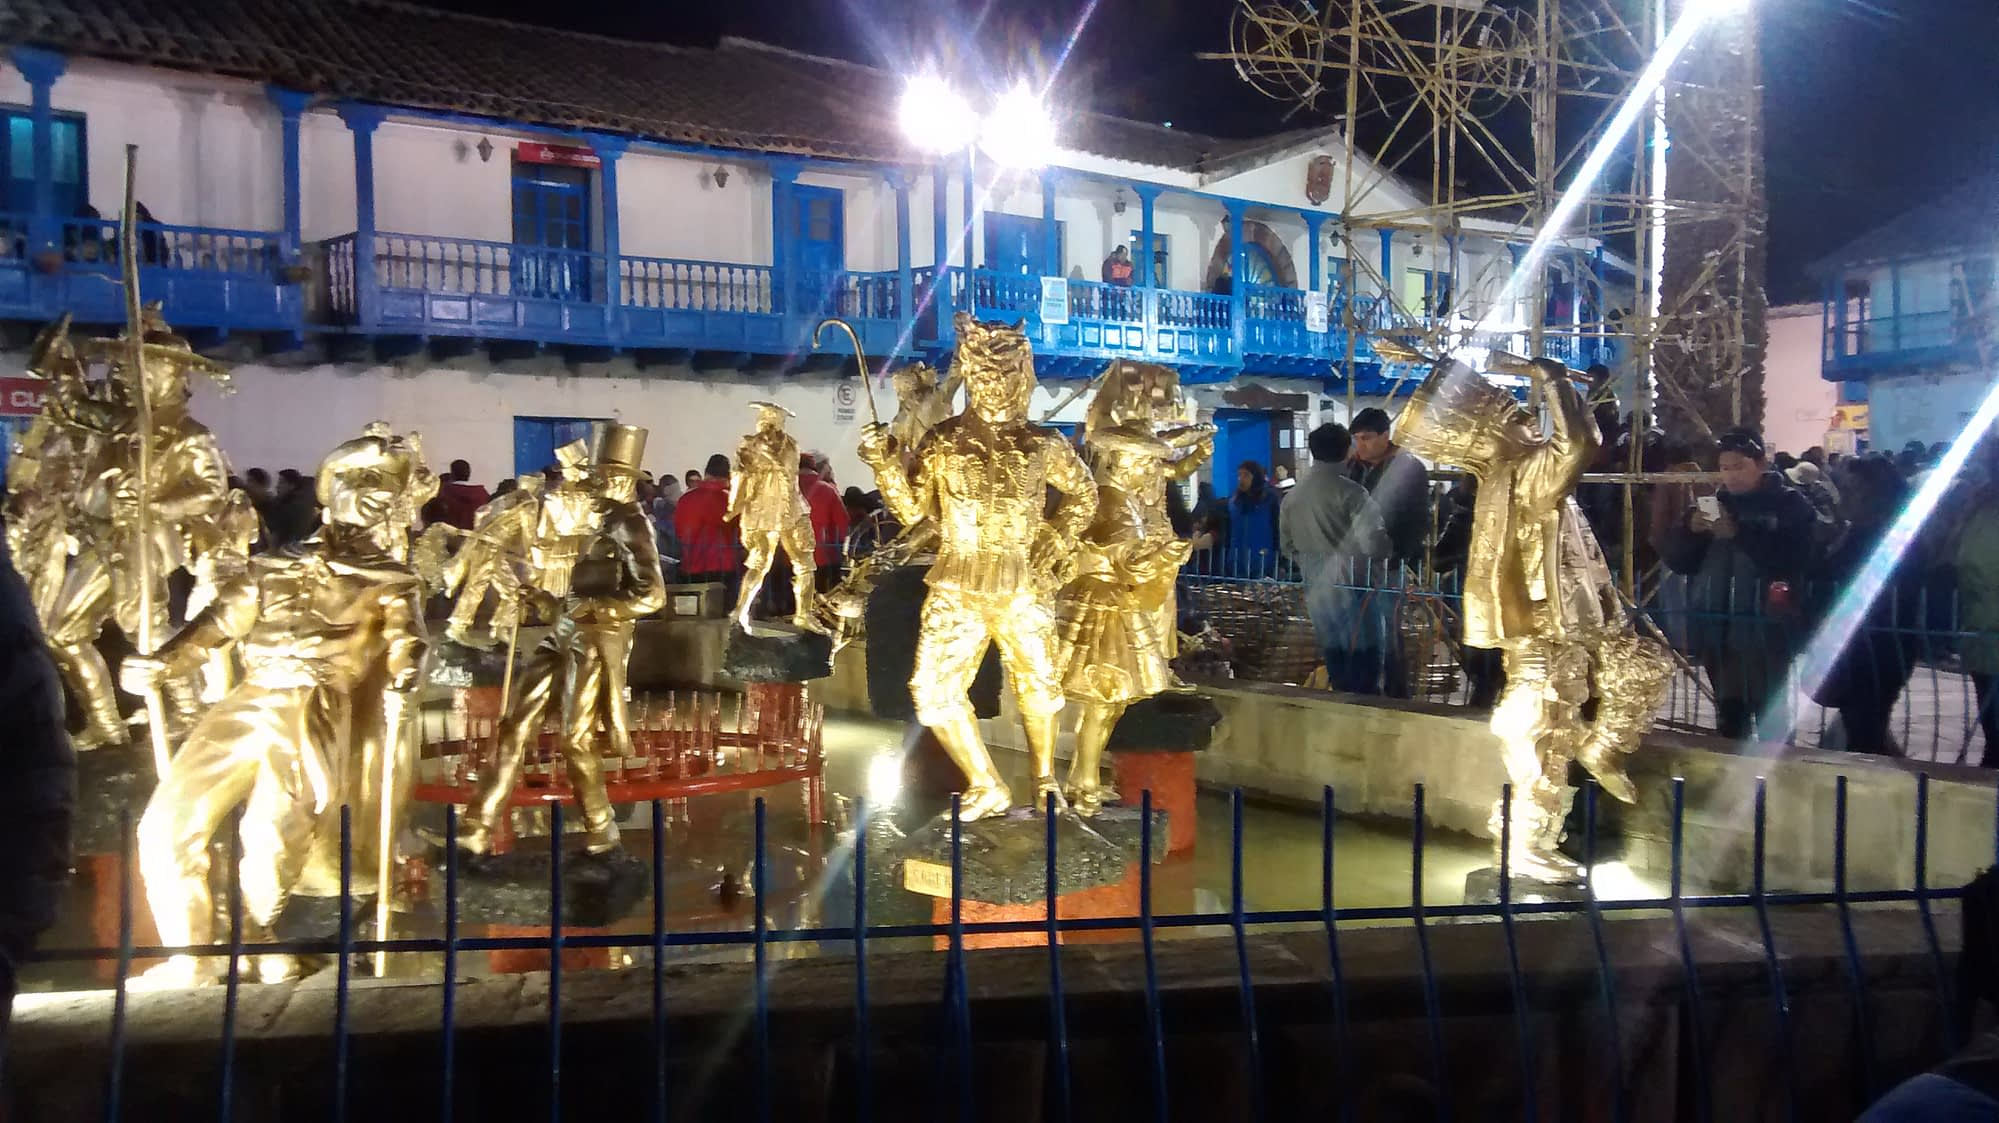 Festival in the Andes